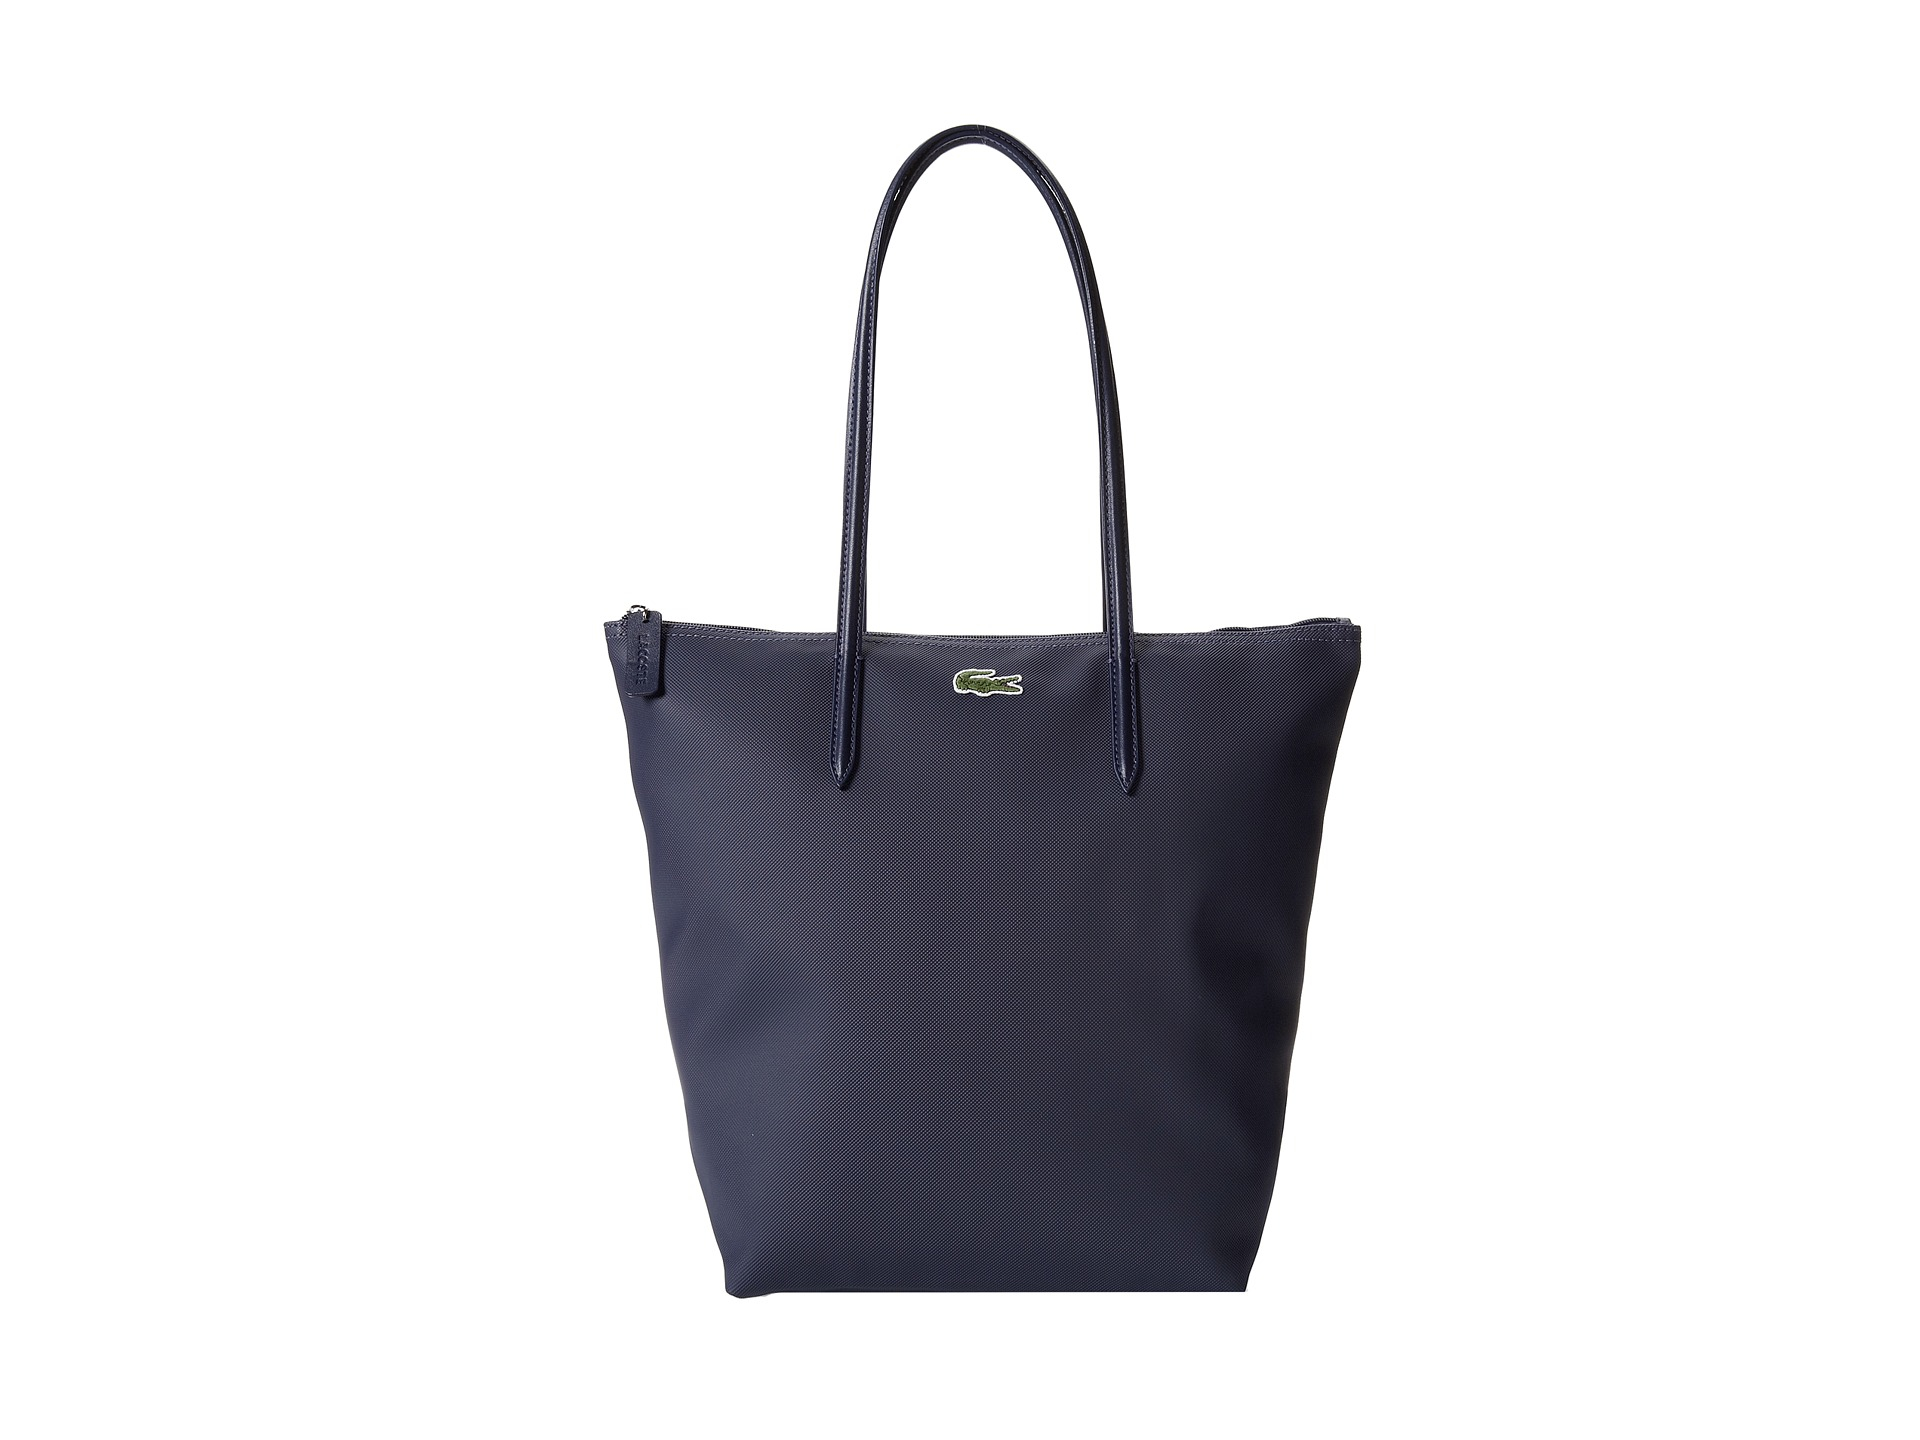 lacoste bags - photo #46